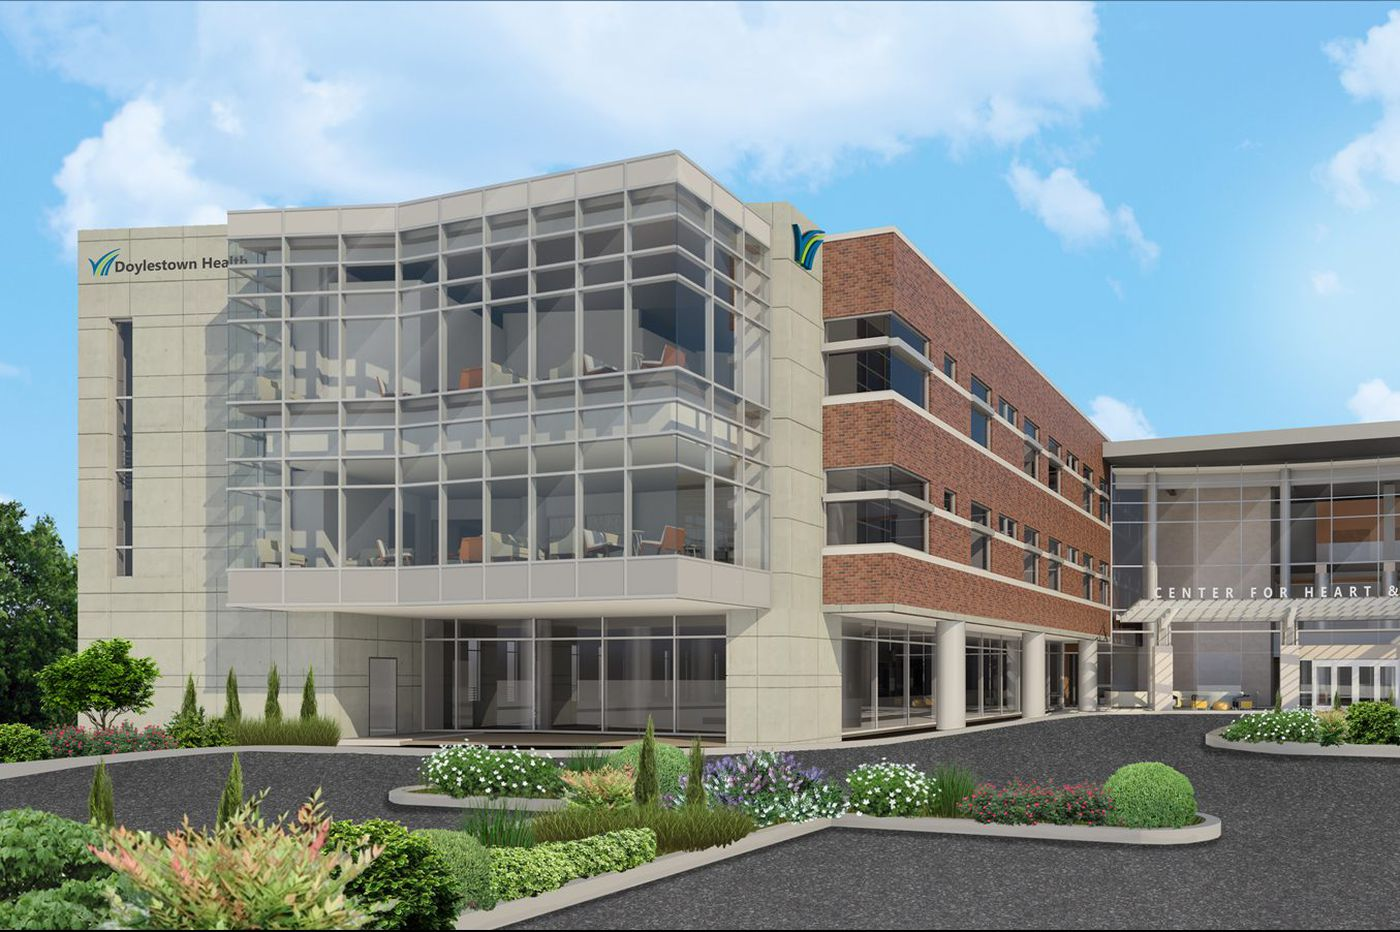 Doylestown Health outlines $100M in capital projects; launches $75M fundraising campaign